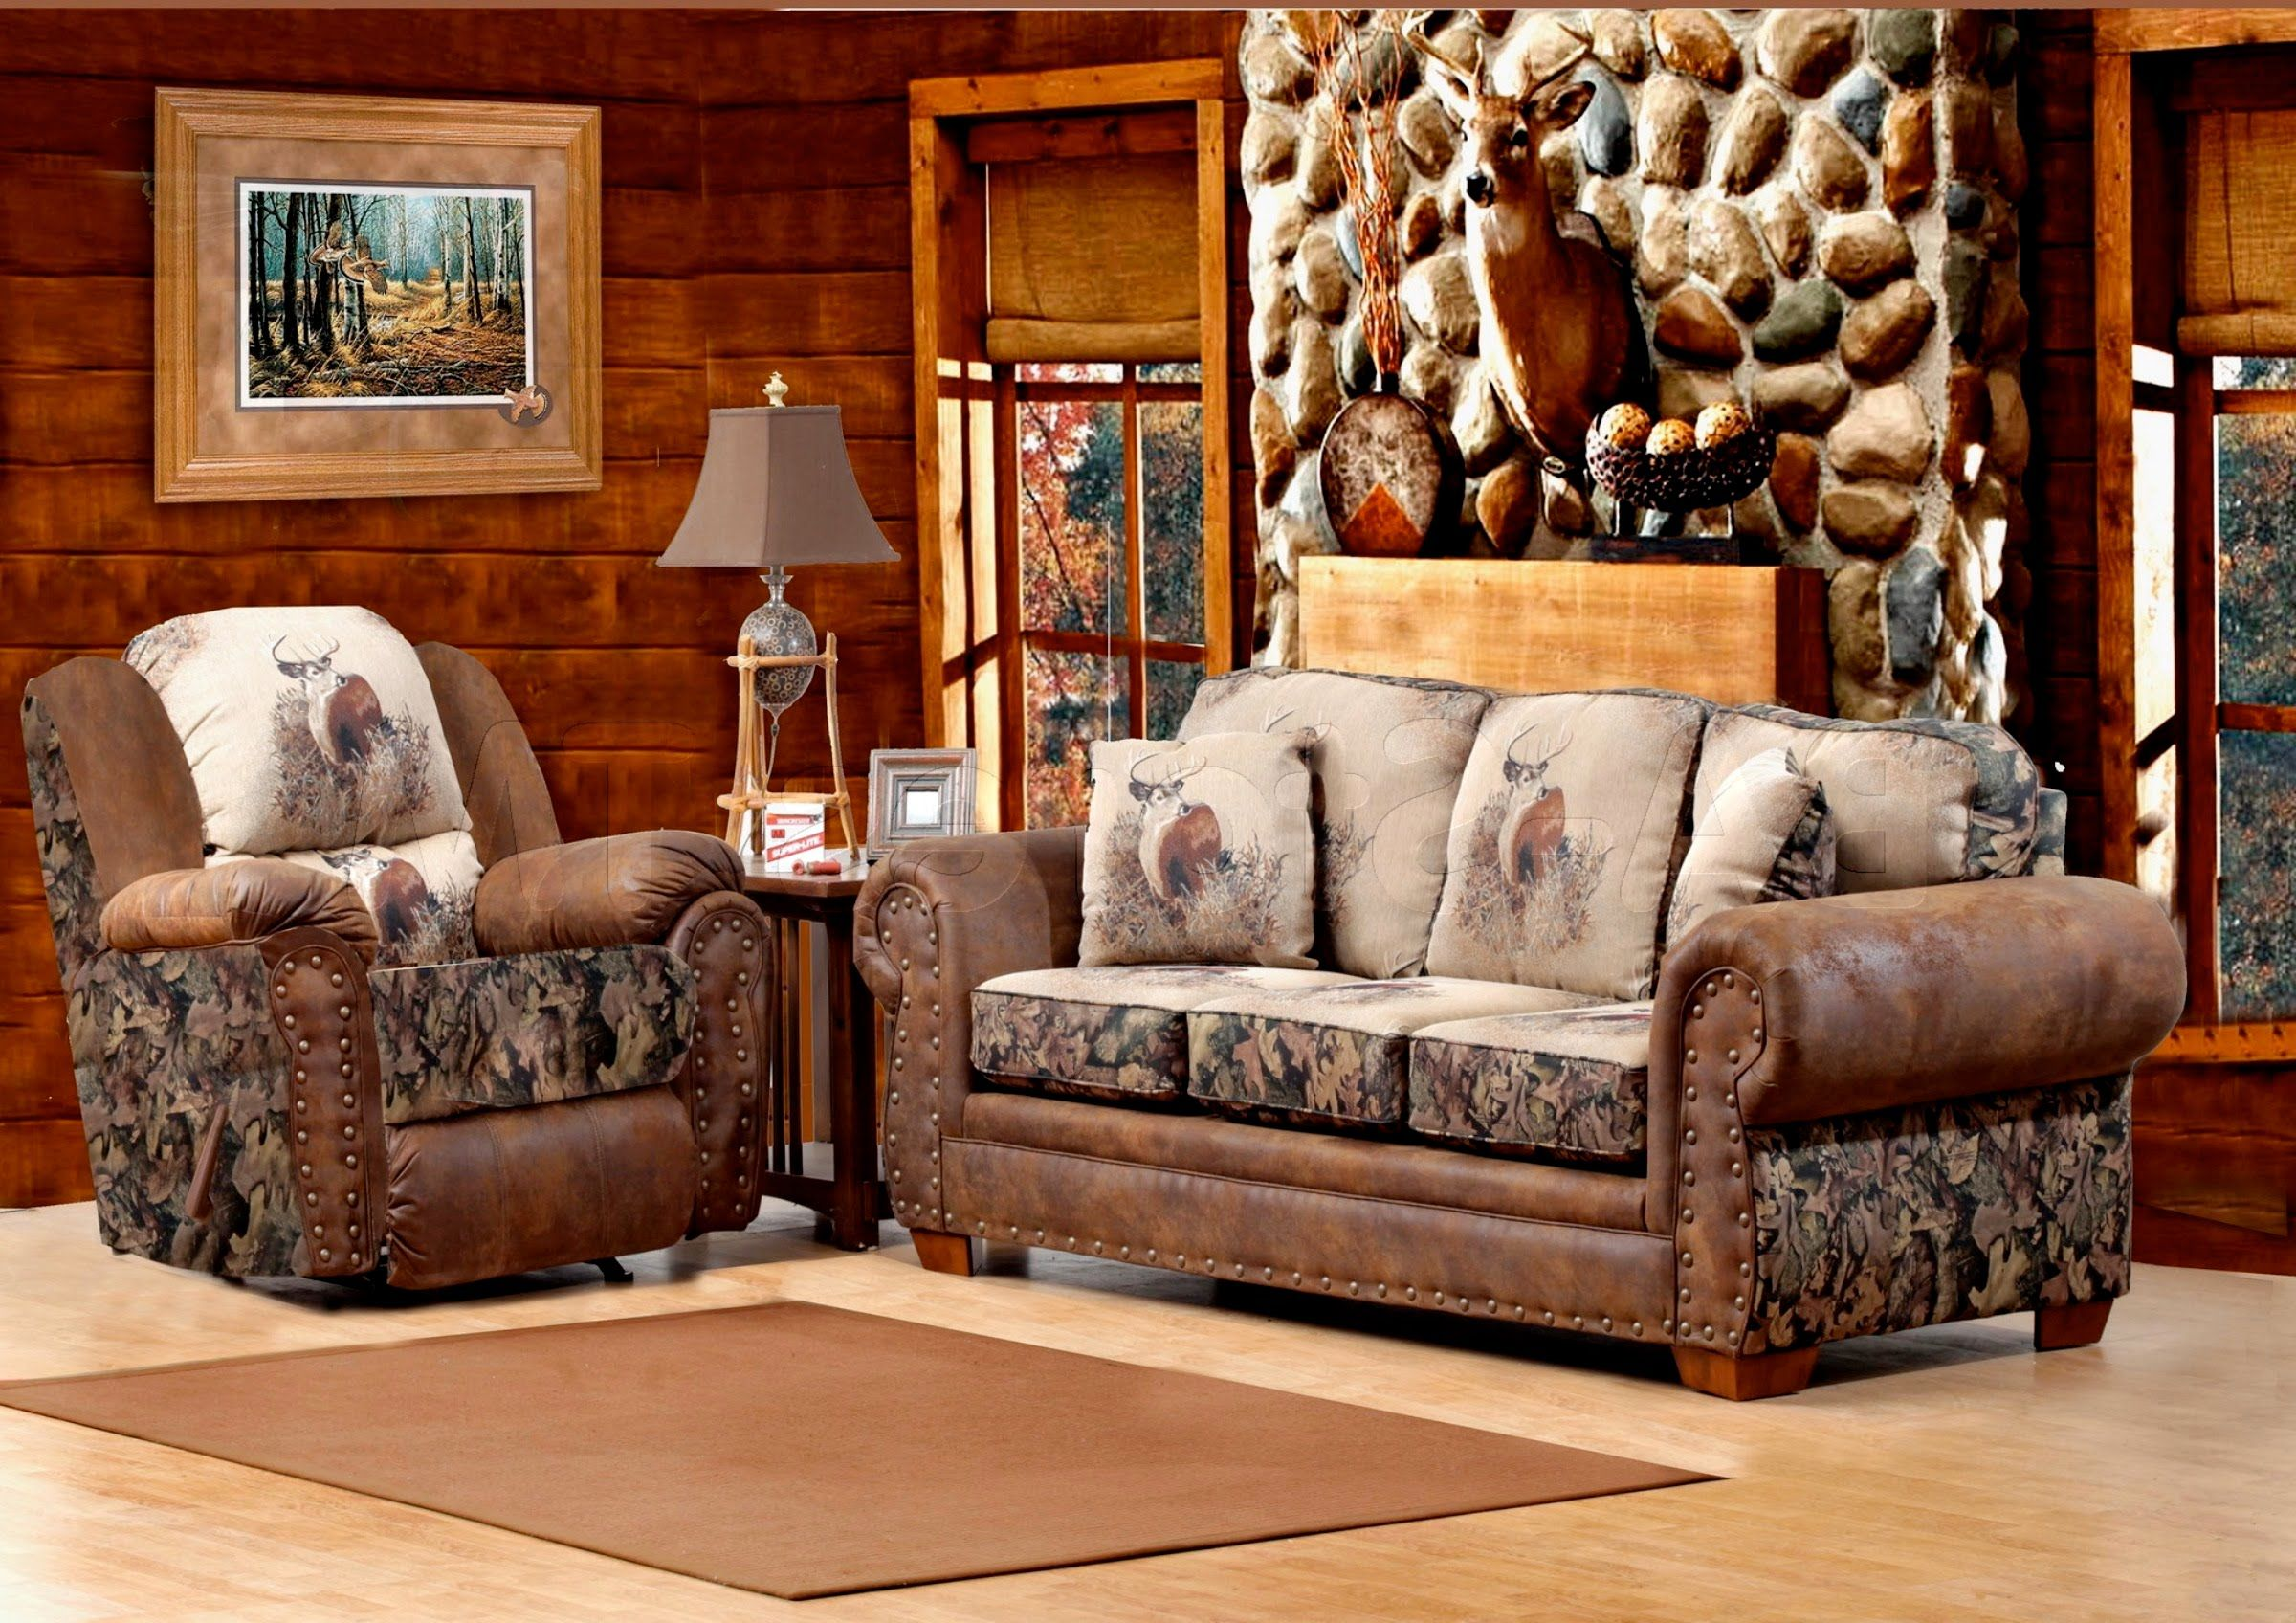 shells furniture camo see nightmare photos